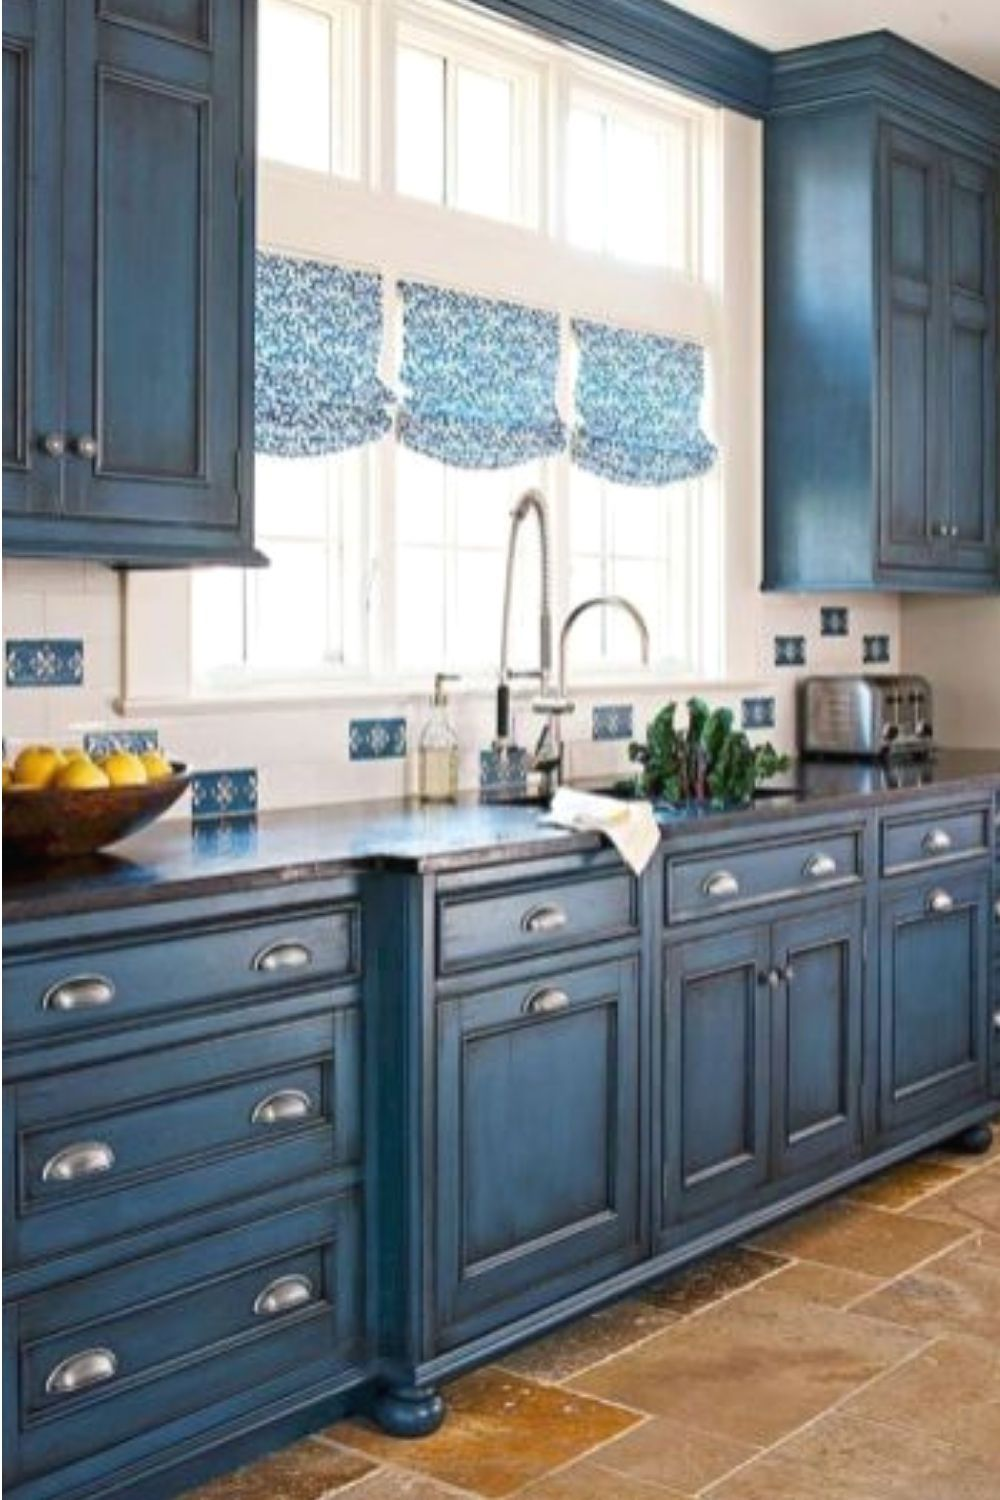 40 life hacks the best creative kitchen to add to your on best farmhouse kitchen decor ideas and remodel create your dreams id=51191